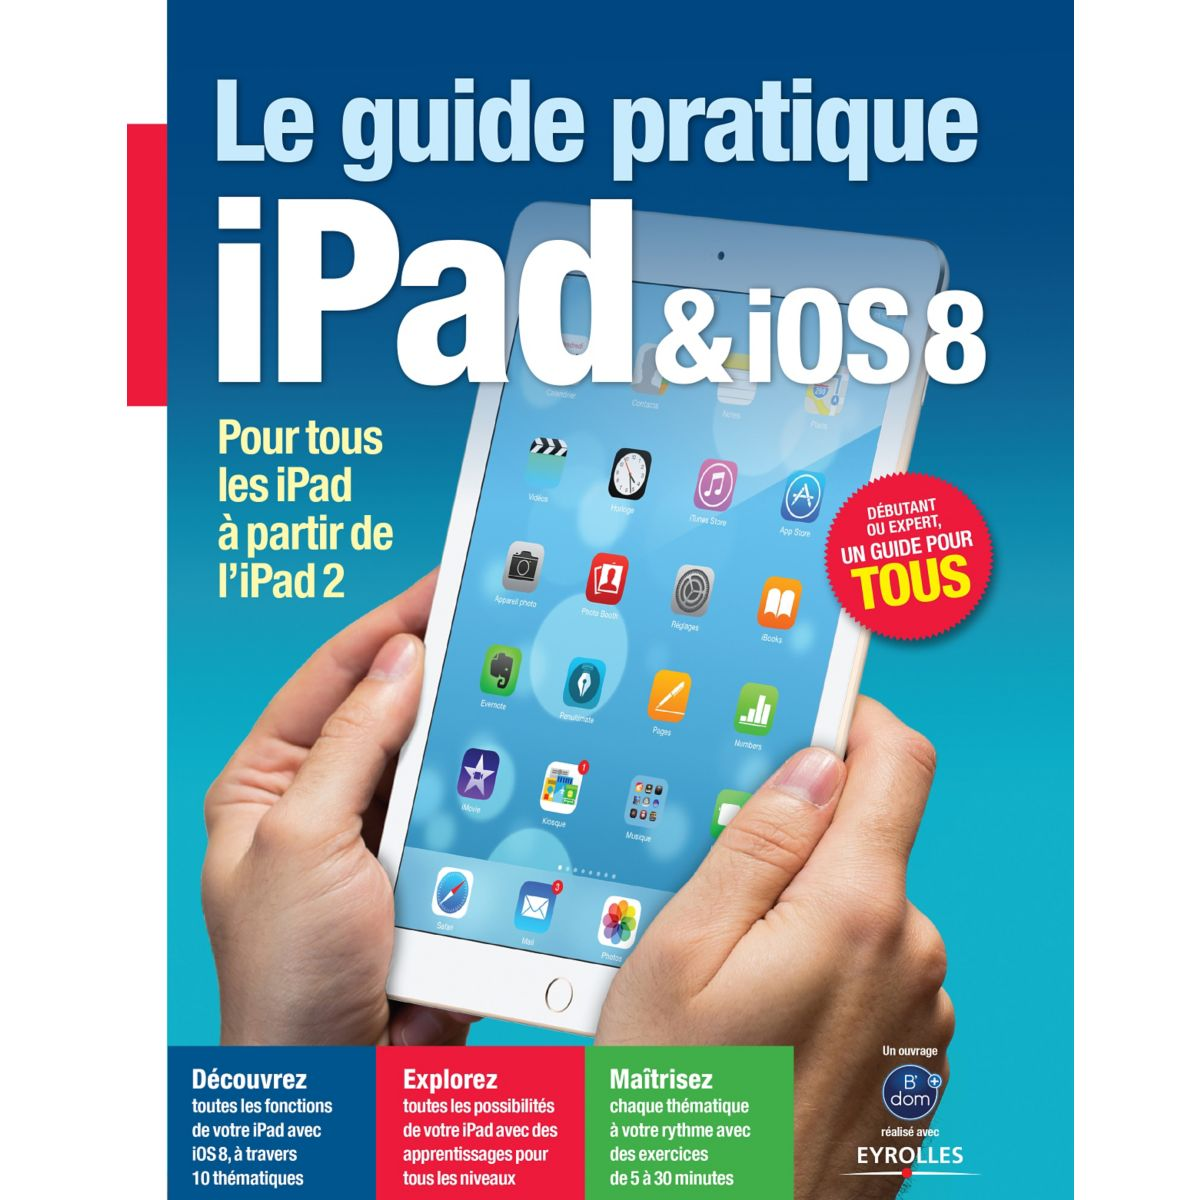 Librairie informatique BDOM+ L'univers Tablette iPad (photo)